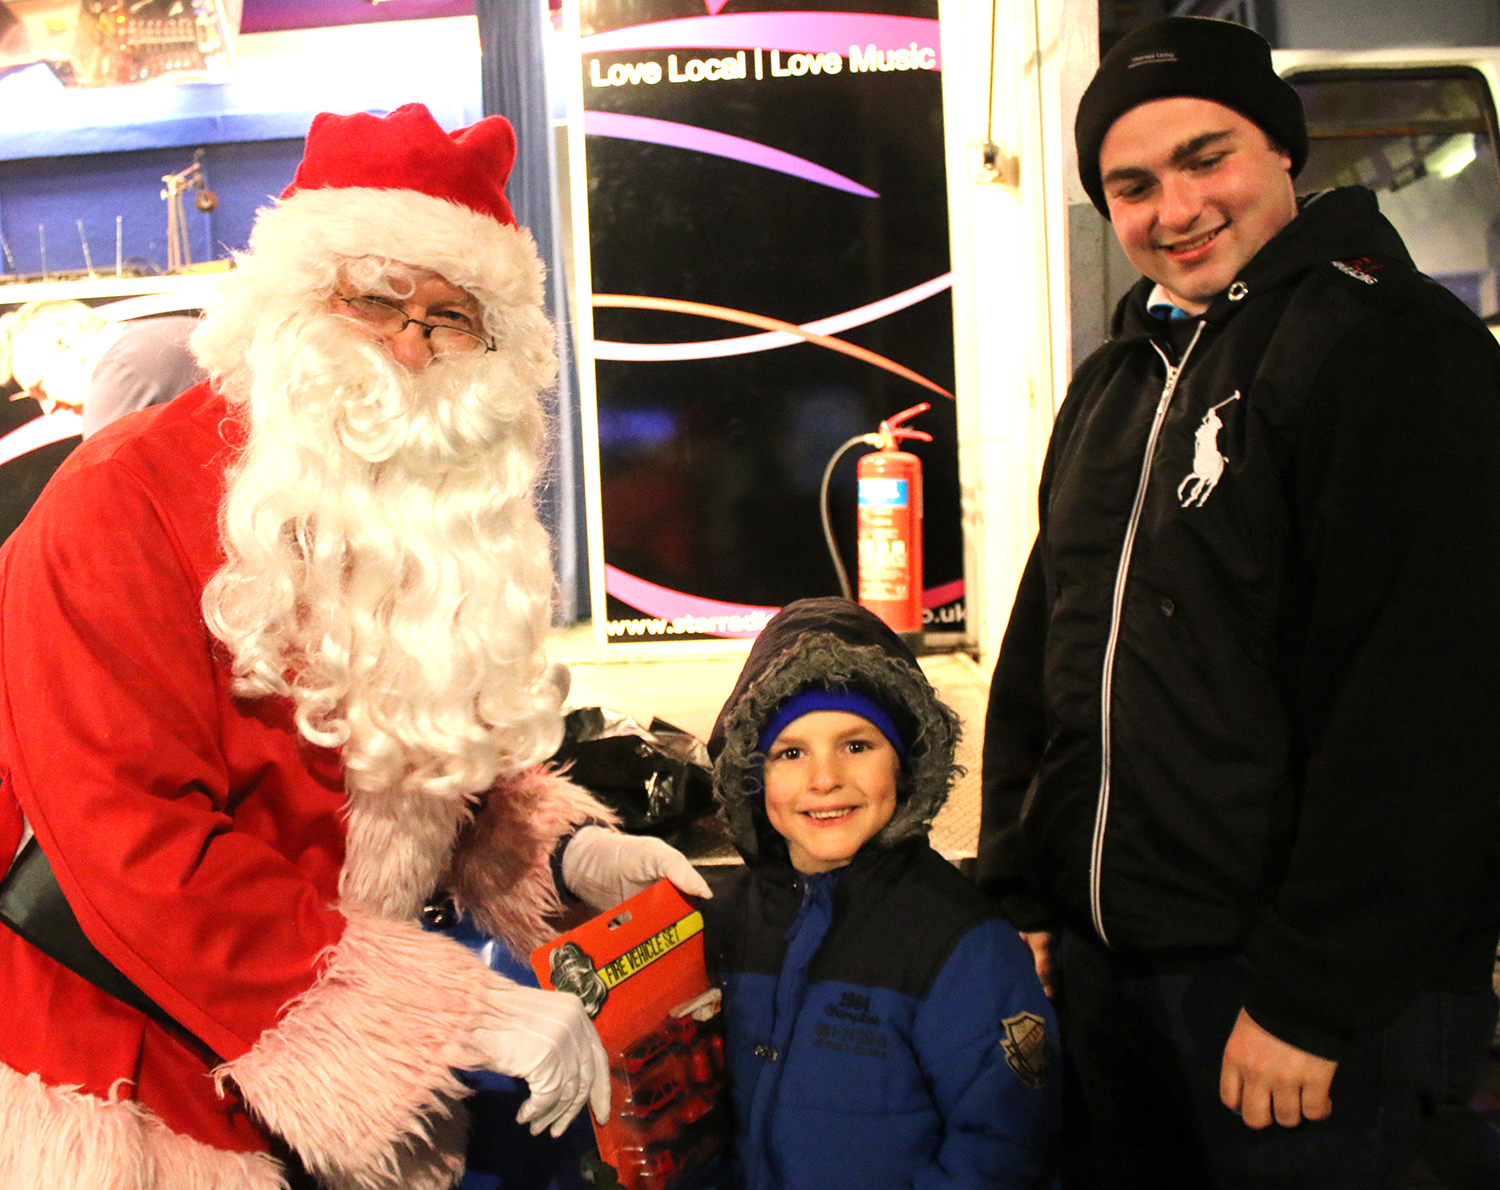 Santa Will Come to Aycliffe This Year